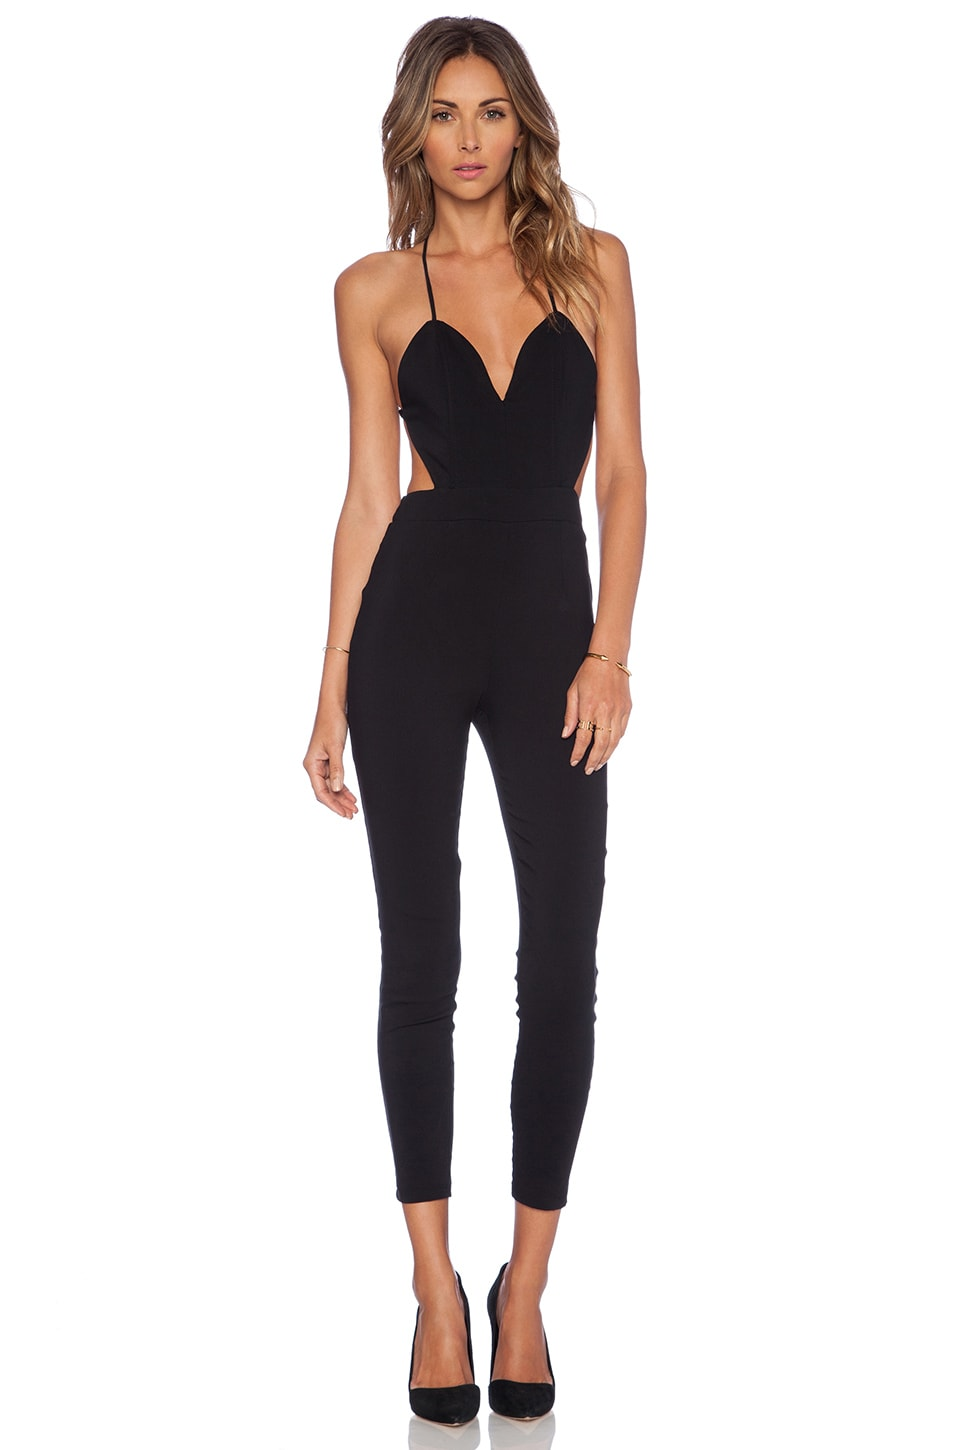 Lovers + Friends Jhene Aiko for Lovers and Friends Let's Be Real Jumpsuit in Black